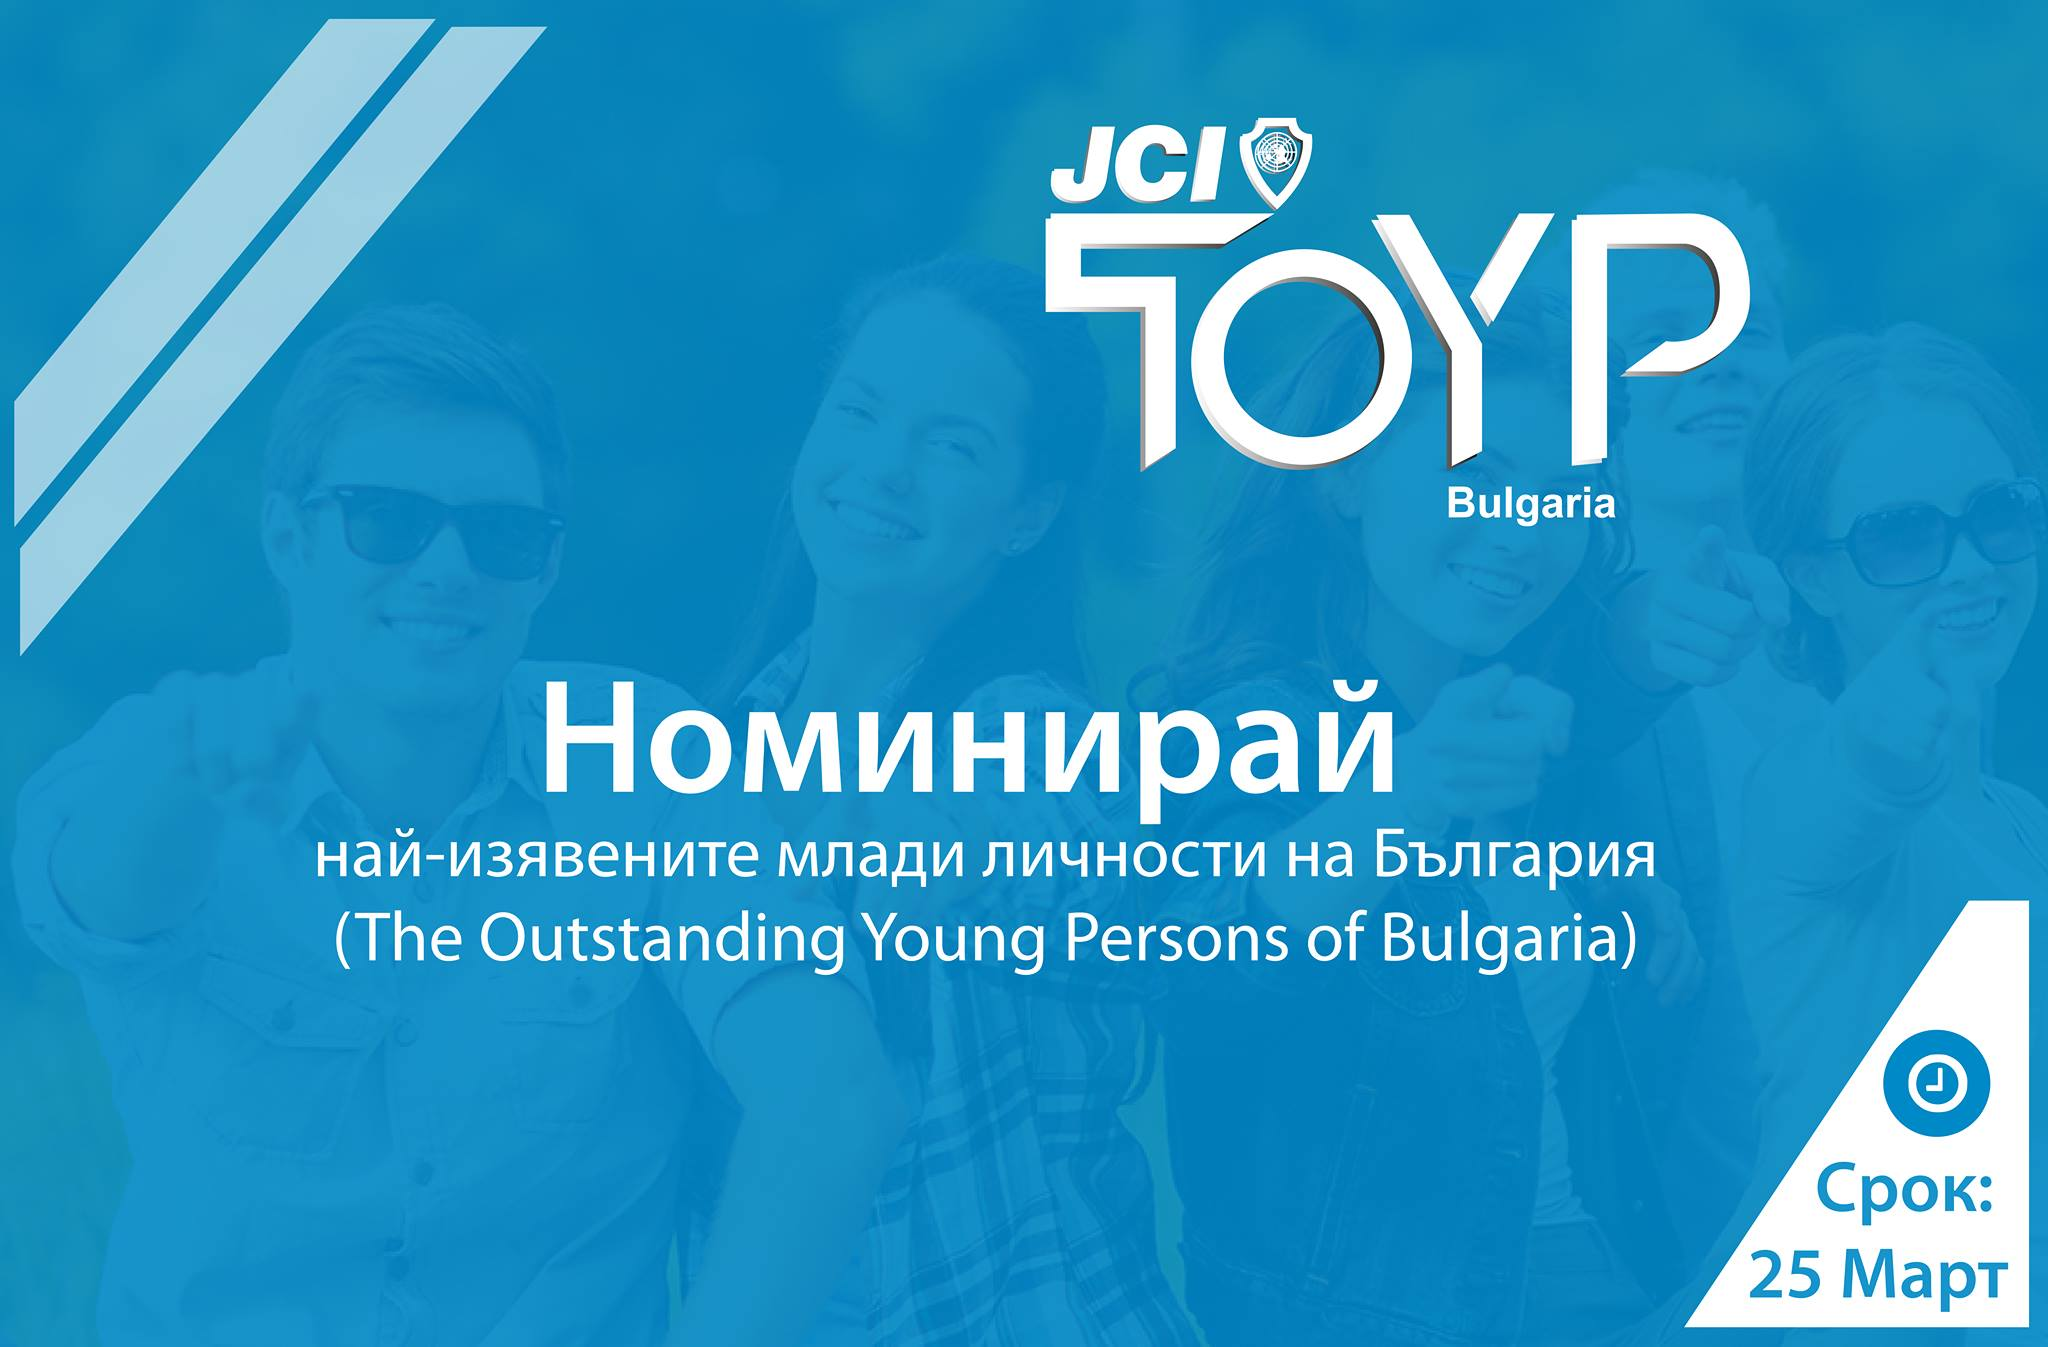 banner-JCI-10-youngest-people-2016(760x500)2